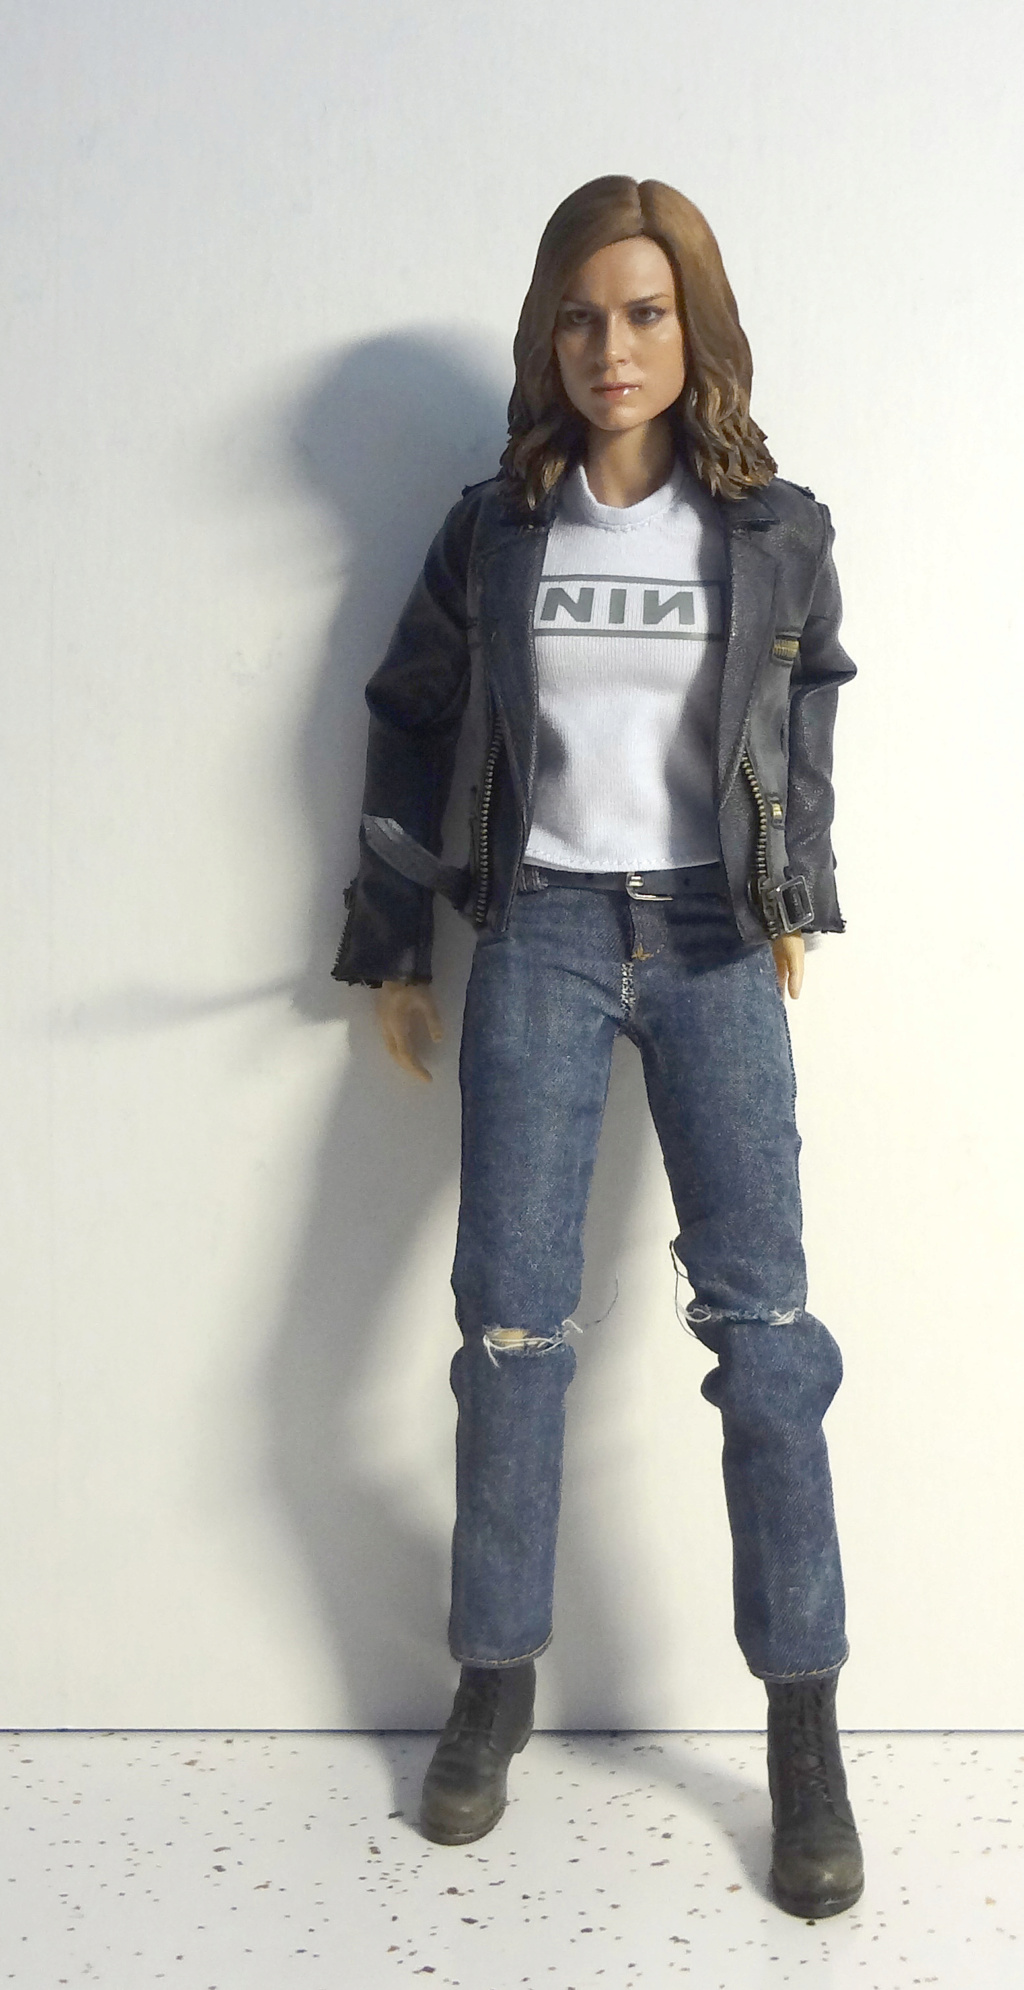 SWToys - NEW PRODUCT: Swtoys FS028 1/6 Scale Danvers figure Dsc00919